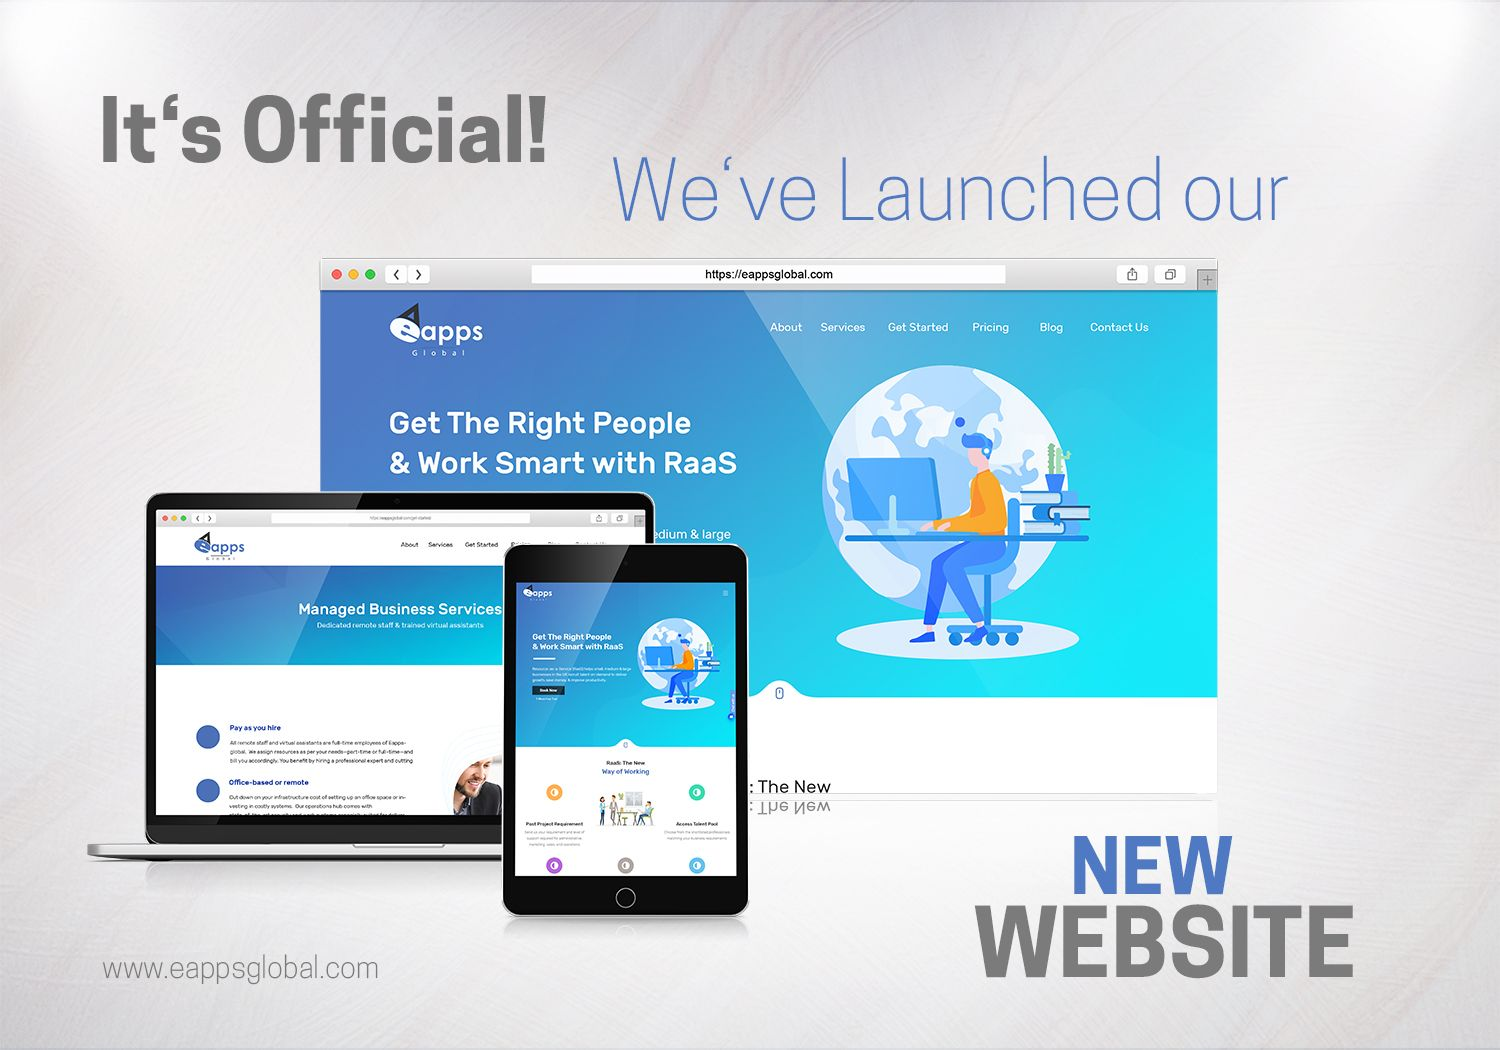 Yes, It's Official! we've LAUNCHED our new website. Visit